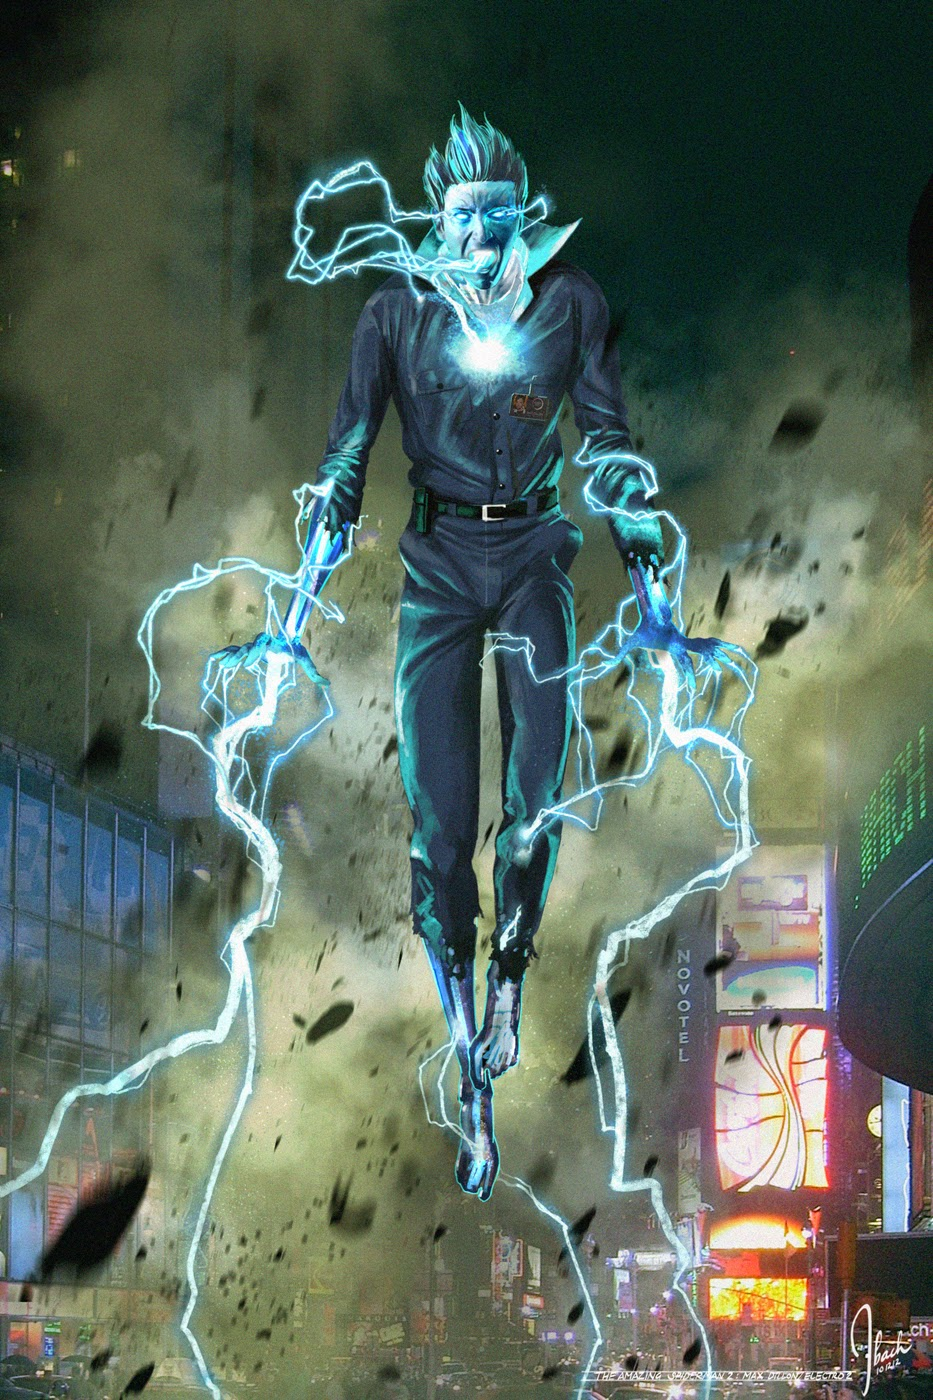 Amazing Spider-Man 2 Electro concept art